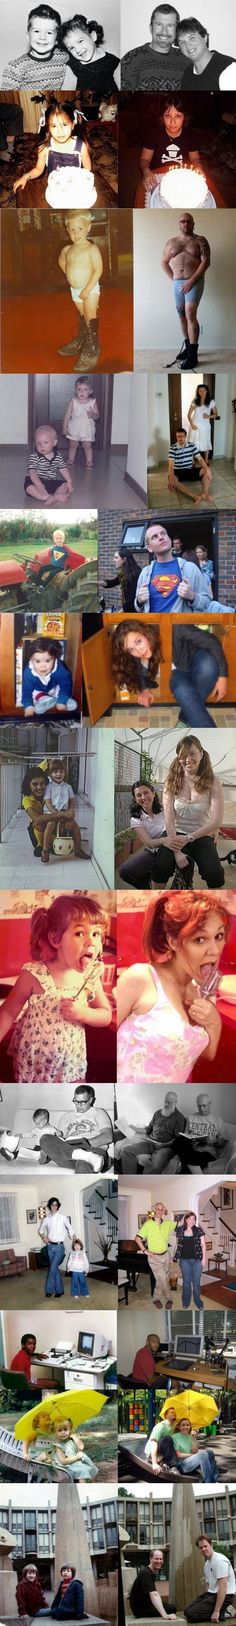 Recreating childhood photos - hilarious gift for parents. SO DOING THIS :)